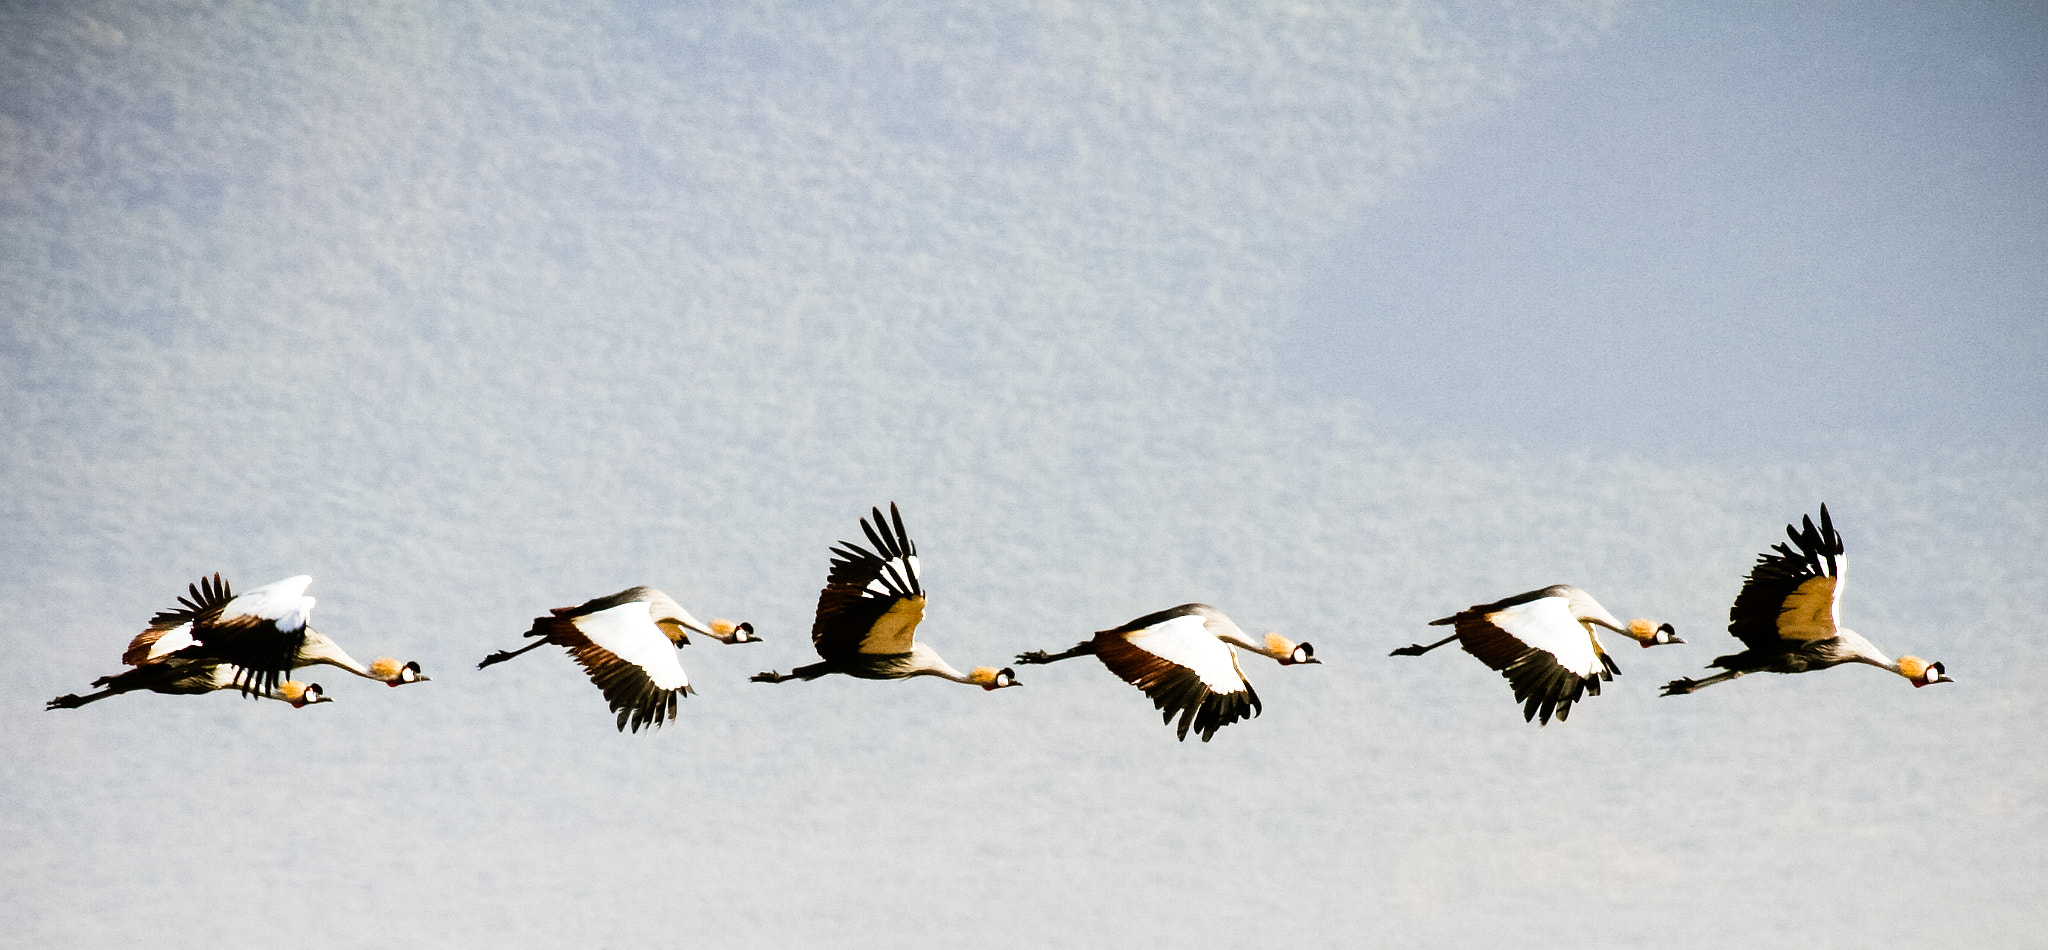 Photograph Crowned Cranes by Mitt Nathwani on 500px